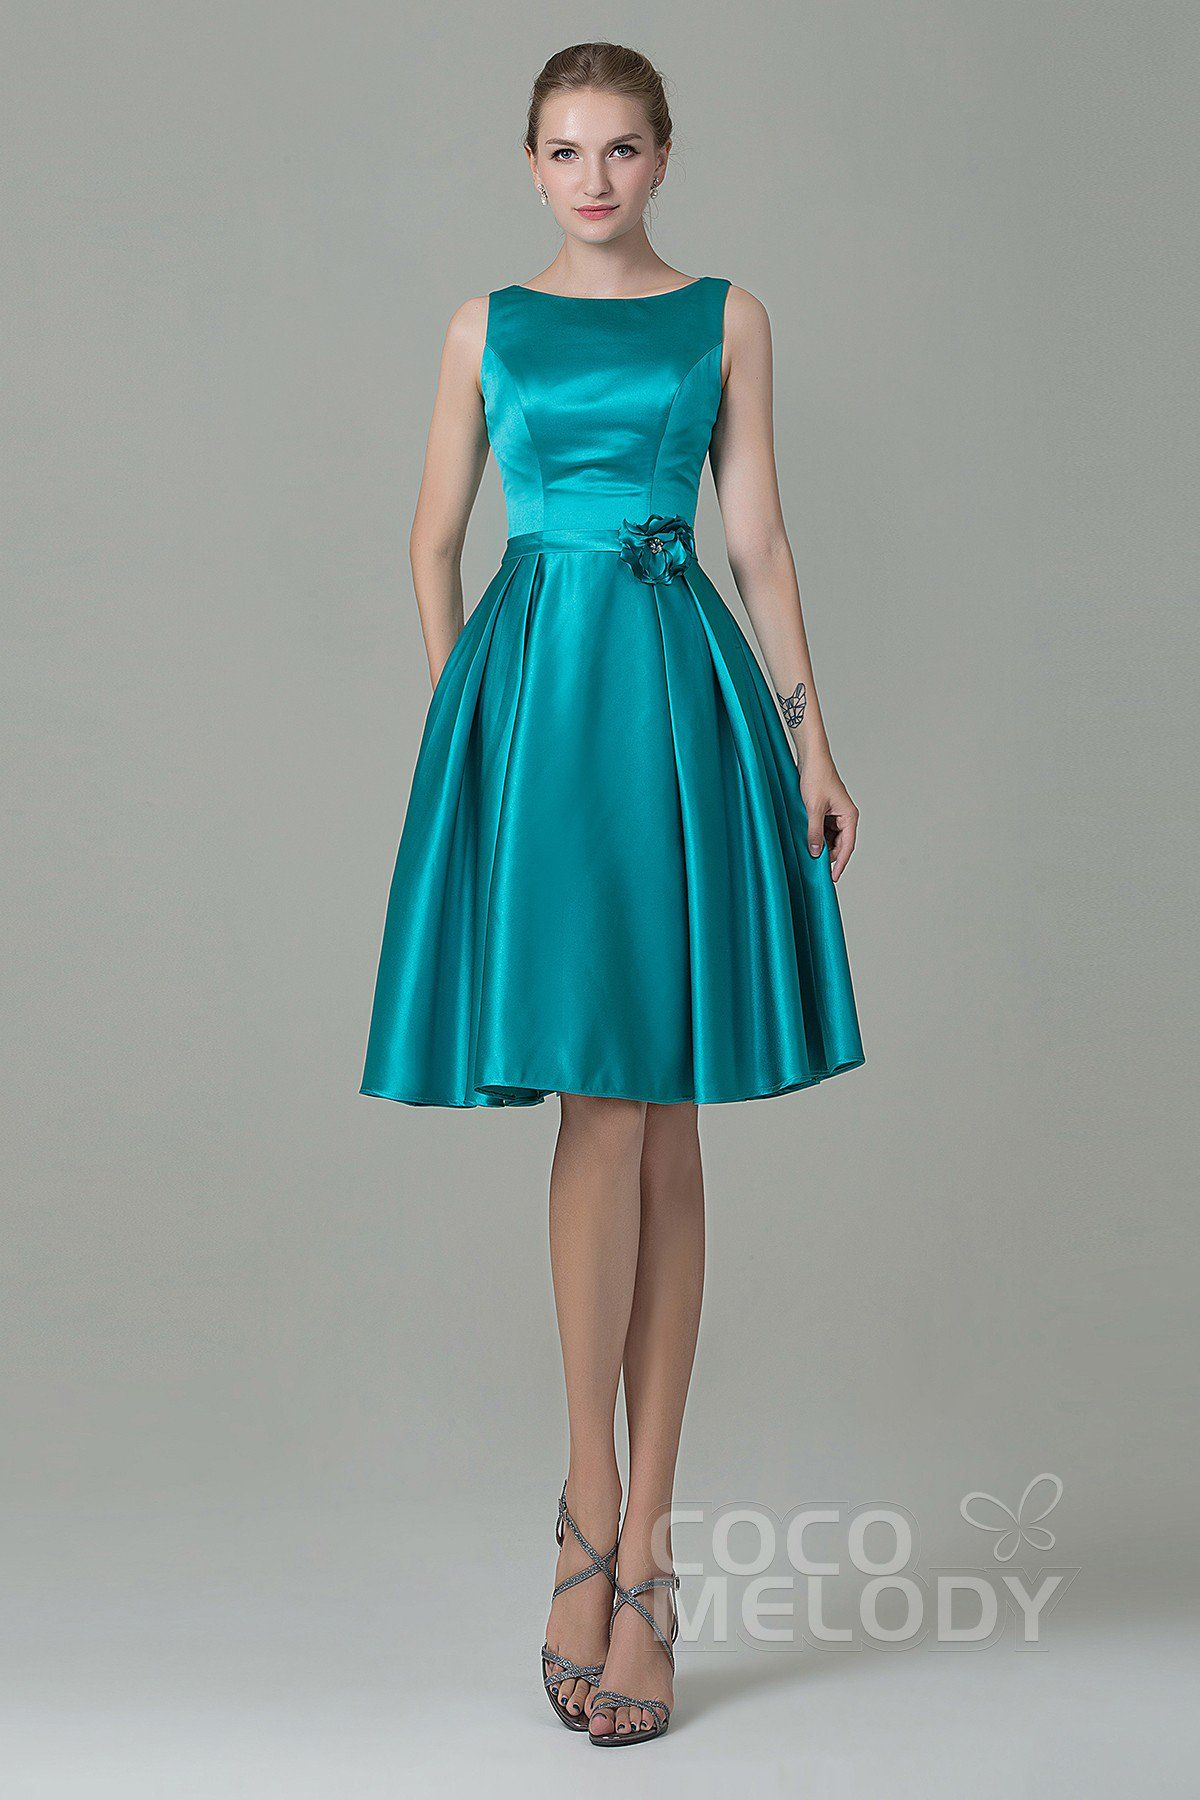 21a309ac2b A-Line Knee Length Satin Bridesmaid Dress COZK1500B | Dresses ...